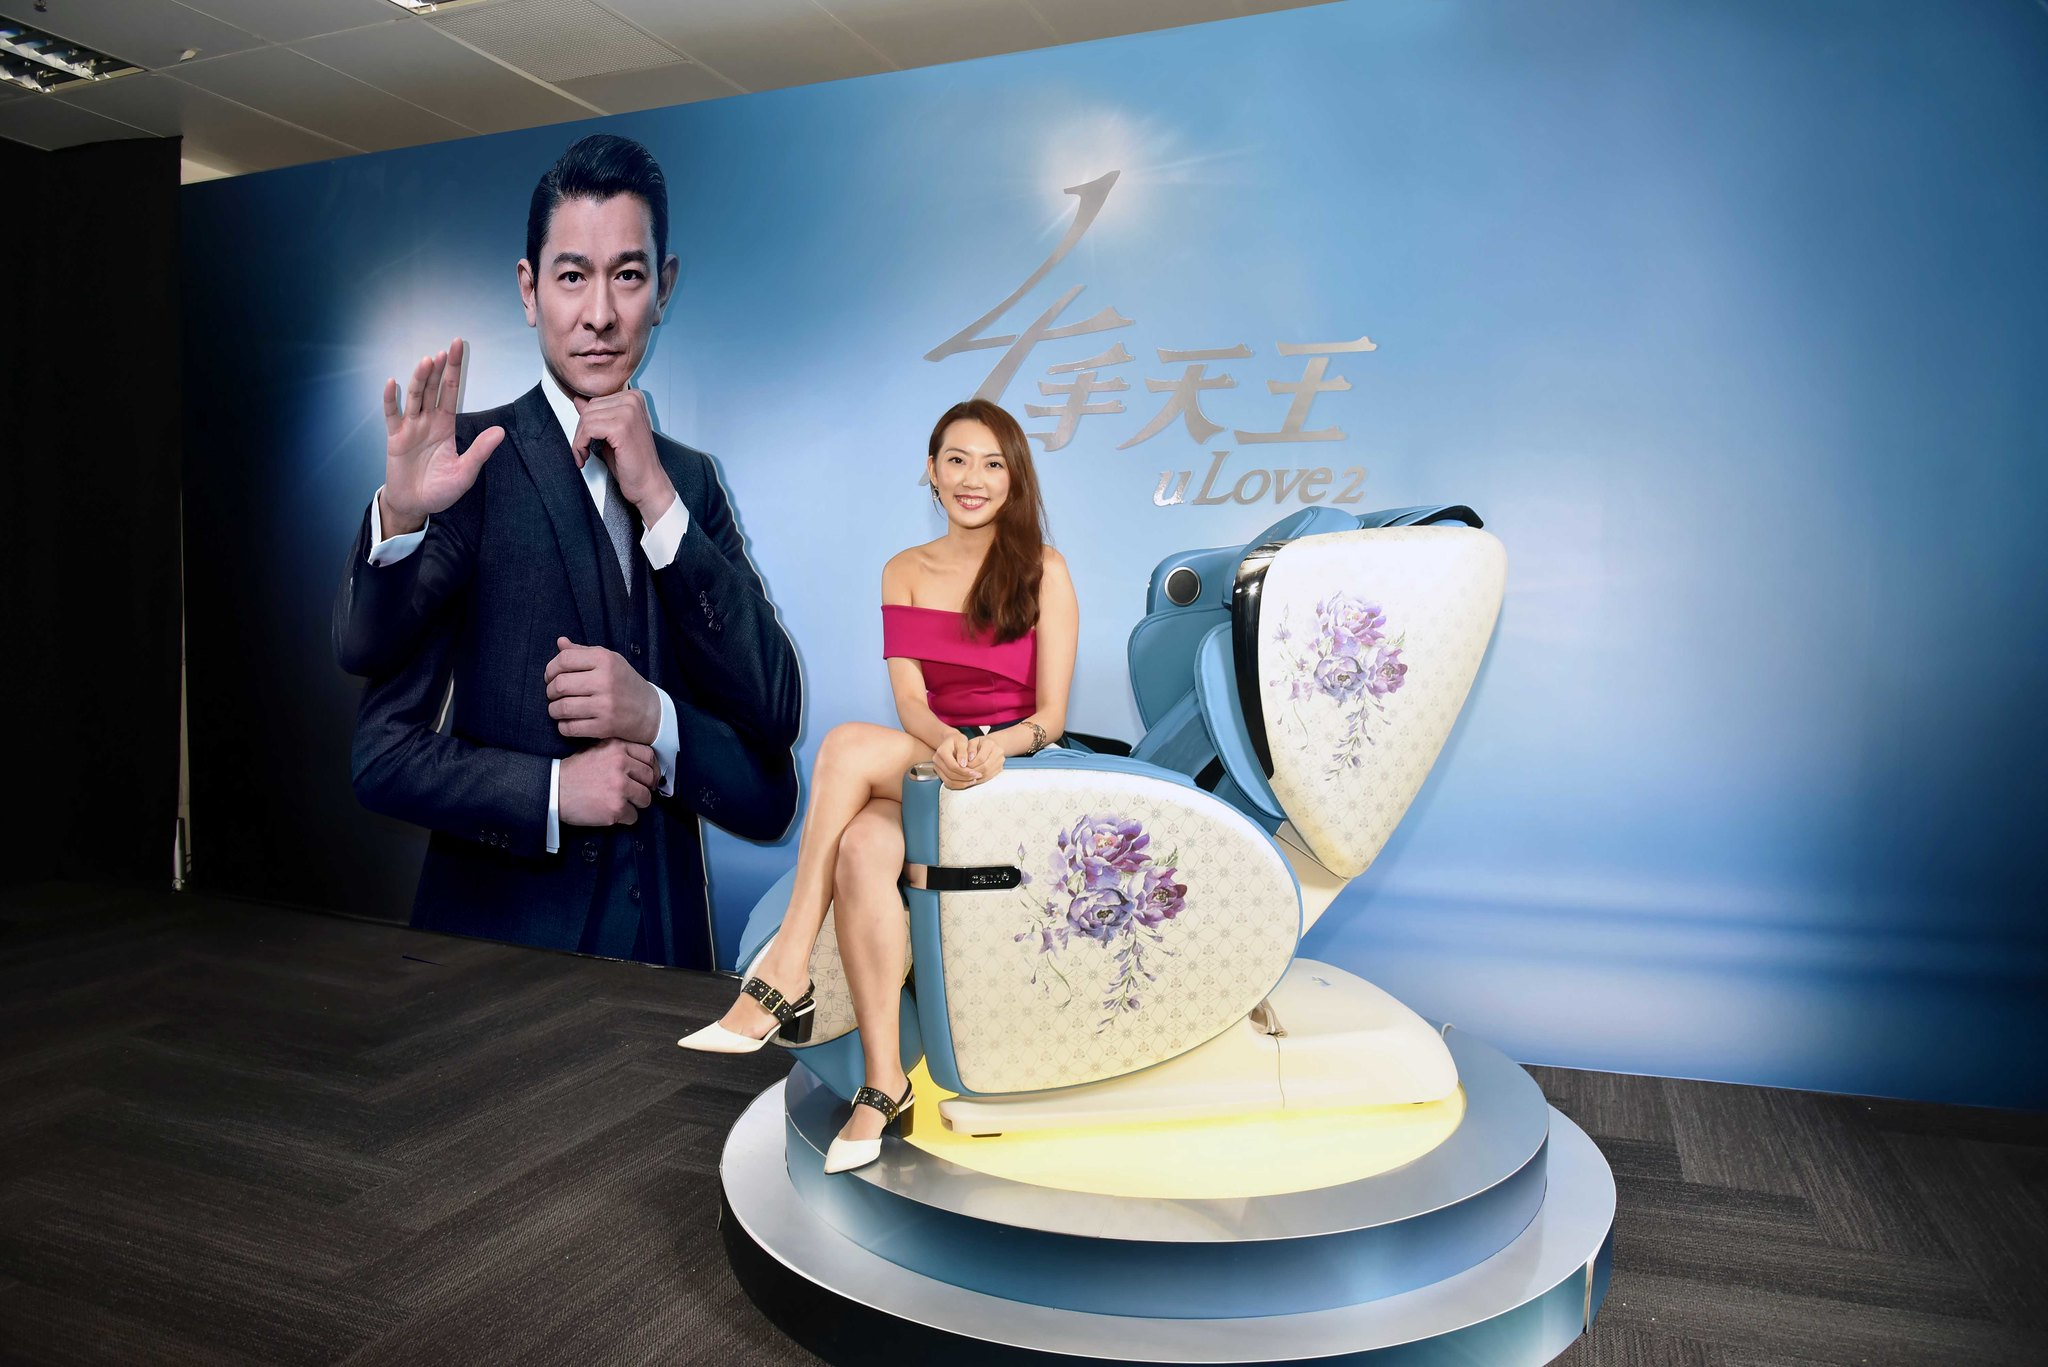 OSIM uLove 2(四手天王)  – The Epitome of Massage Indulgence